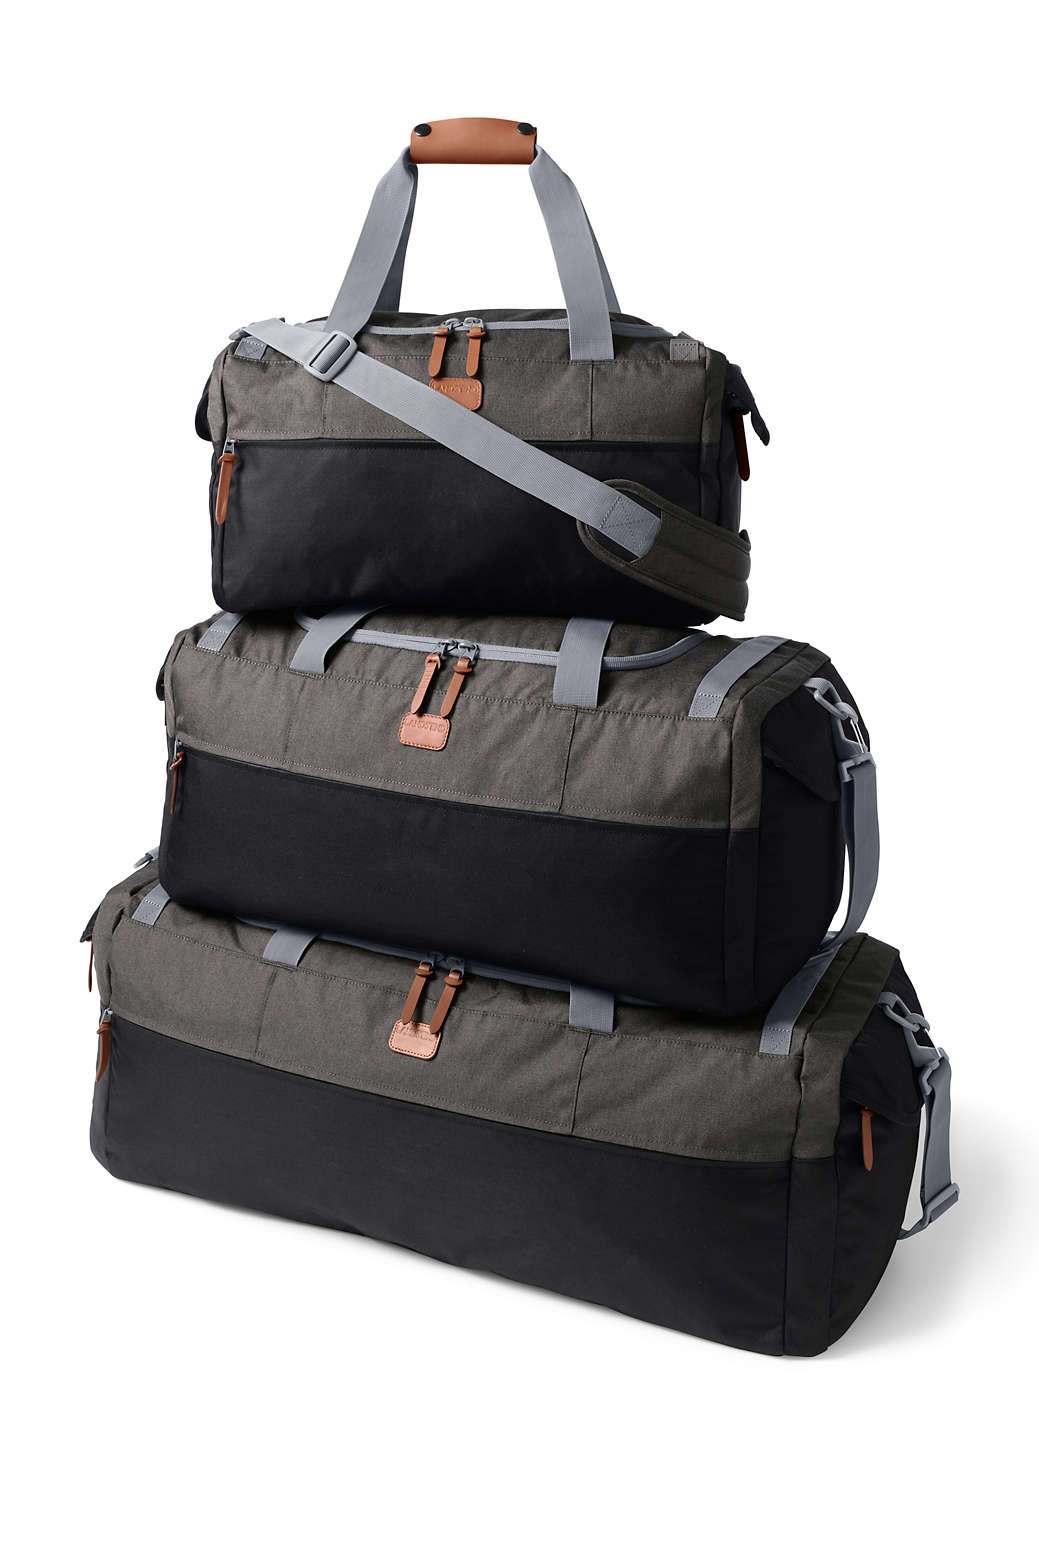 9040f9762a Large Duffle Bags With Wheels | Building Materials Bargain Center